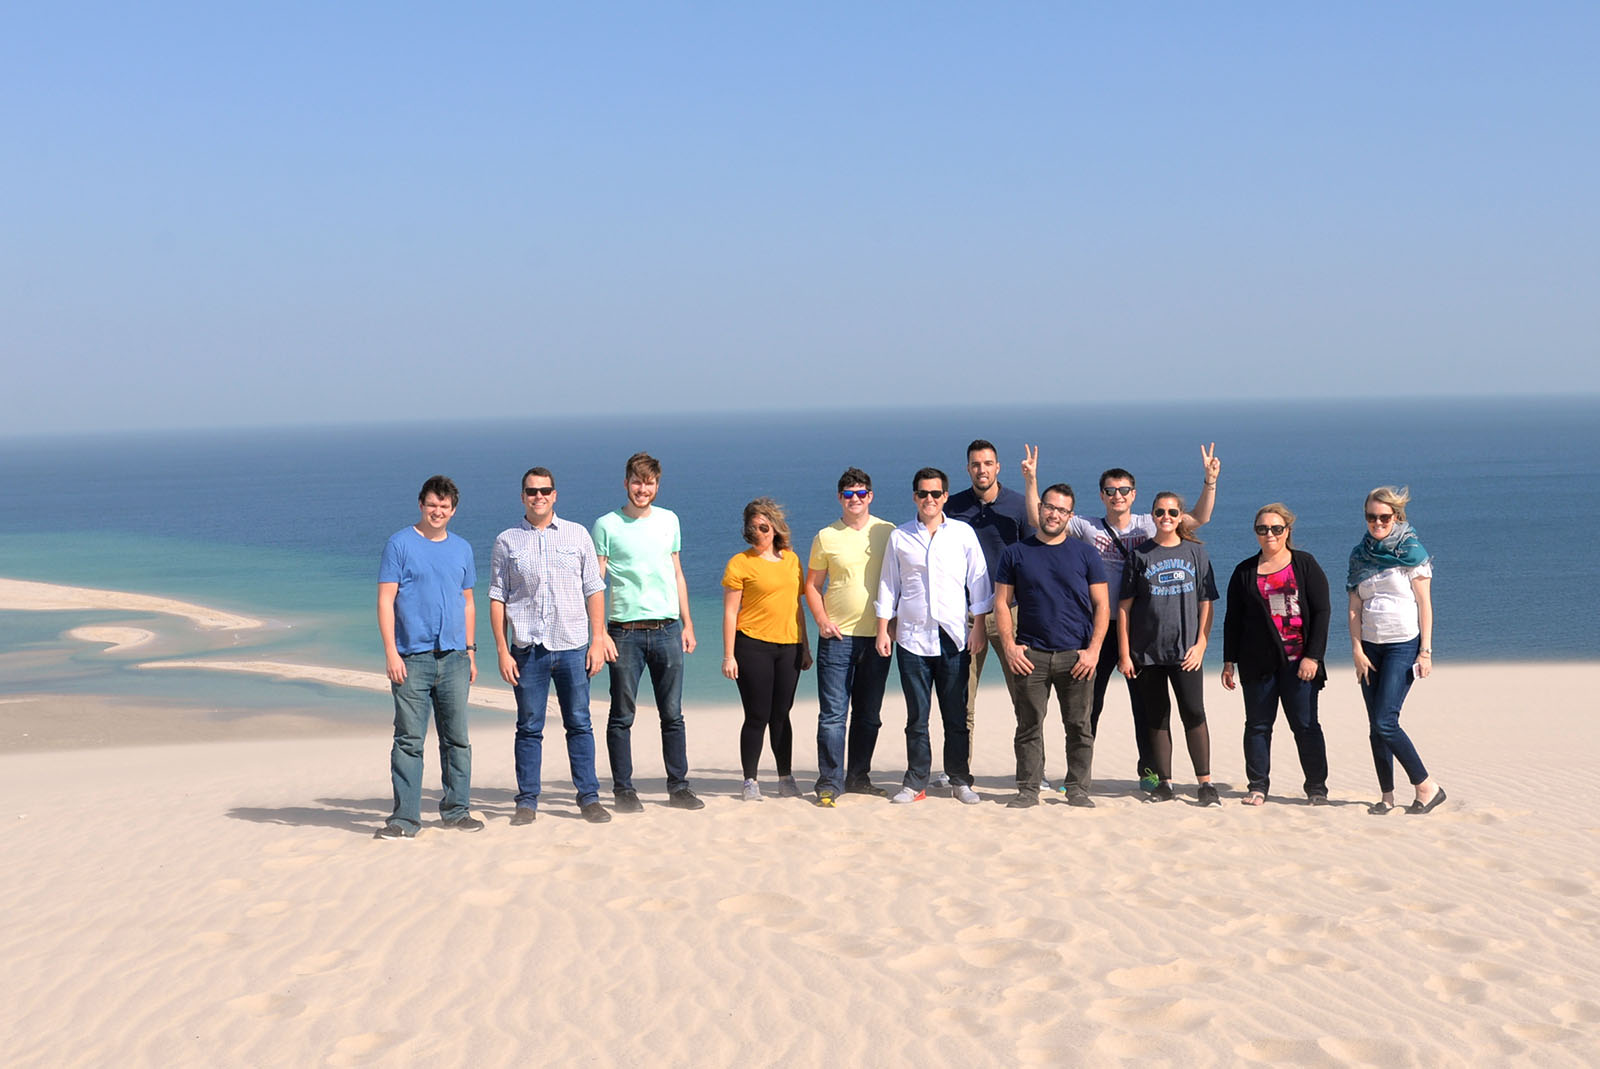 Students stand on one of the towering golden sand dunes in Doha.